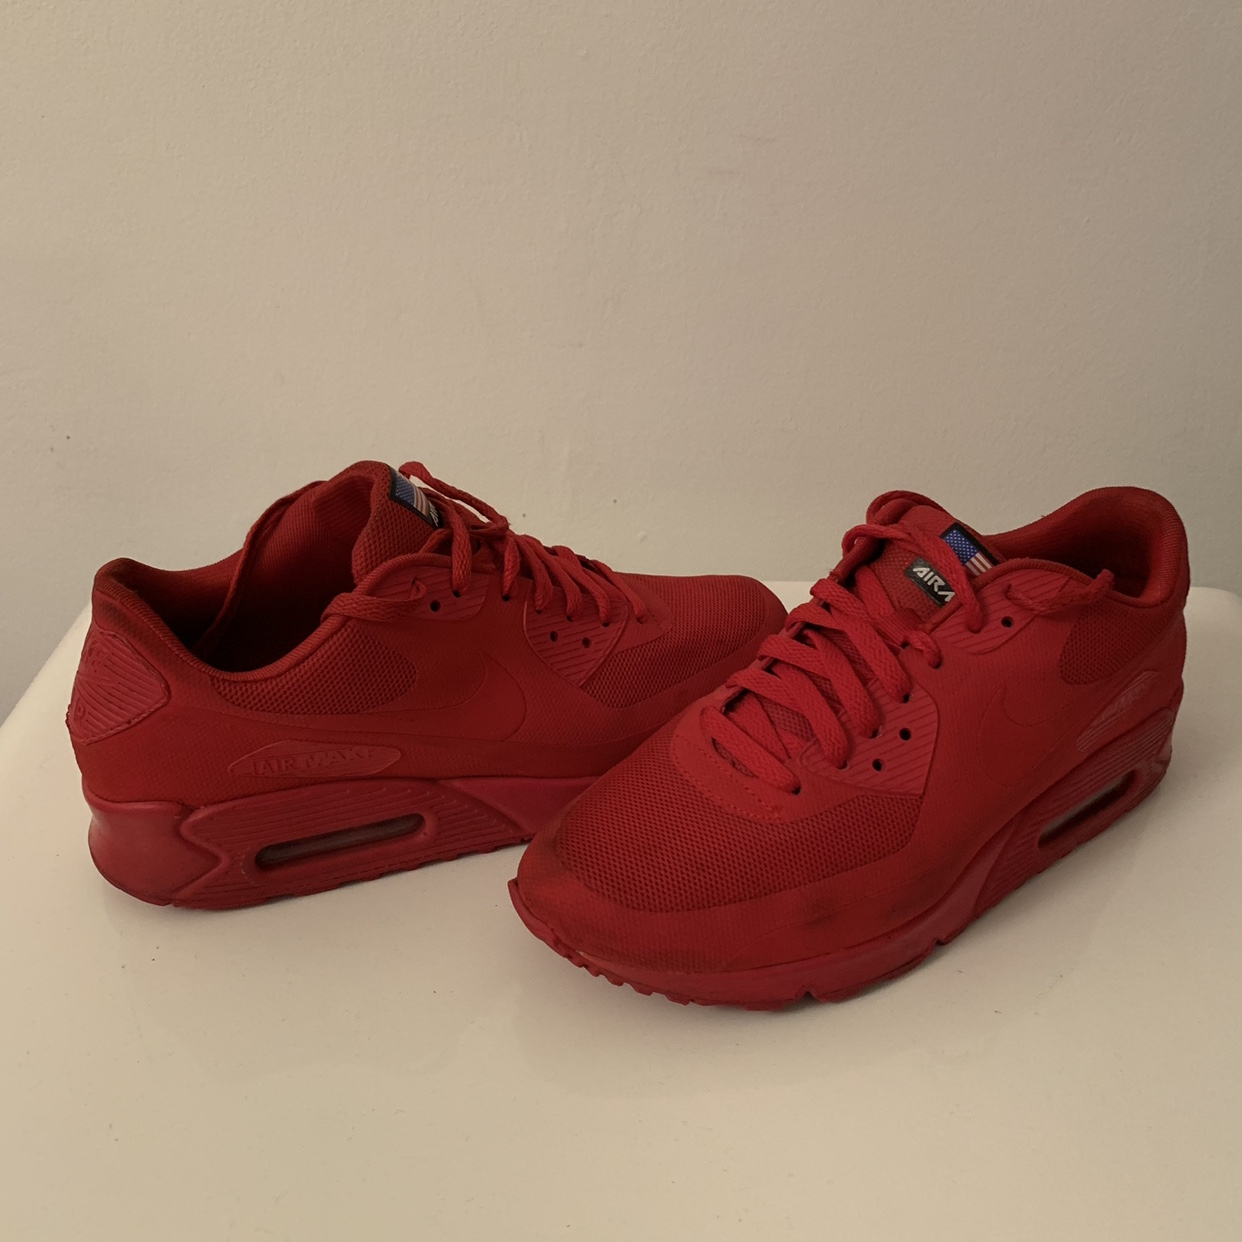 Nike limited edition Air Max 90 Hyperfuse Depop